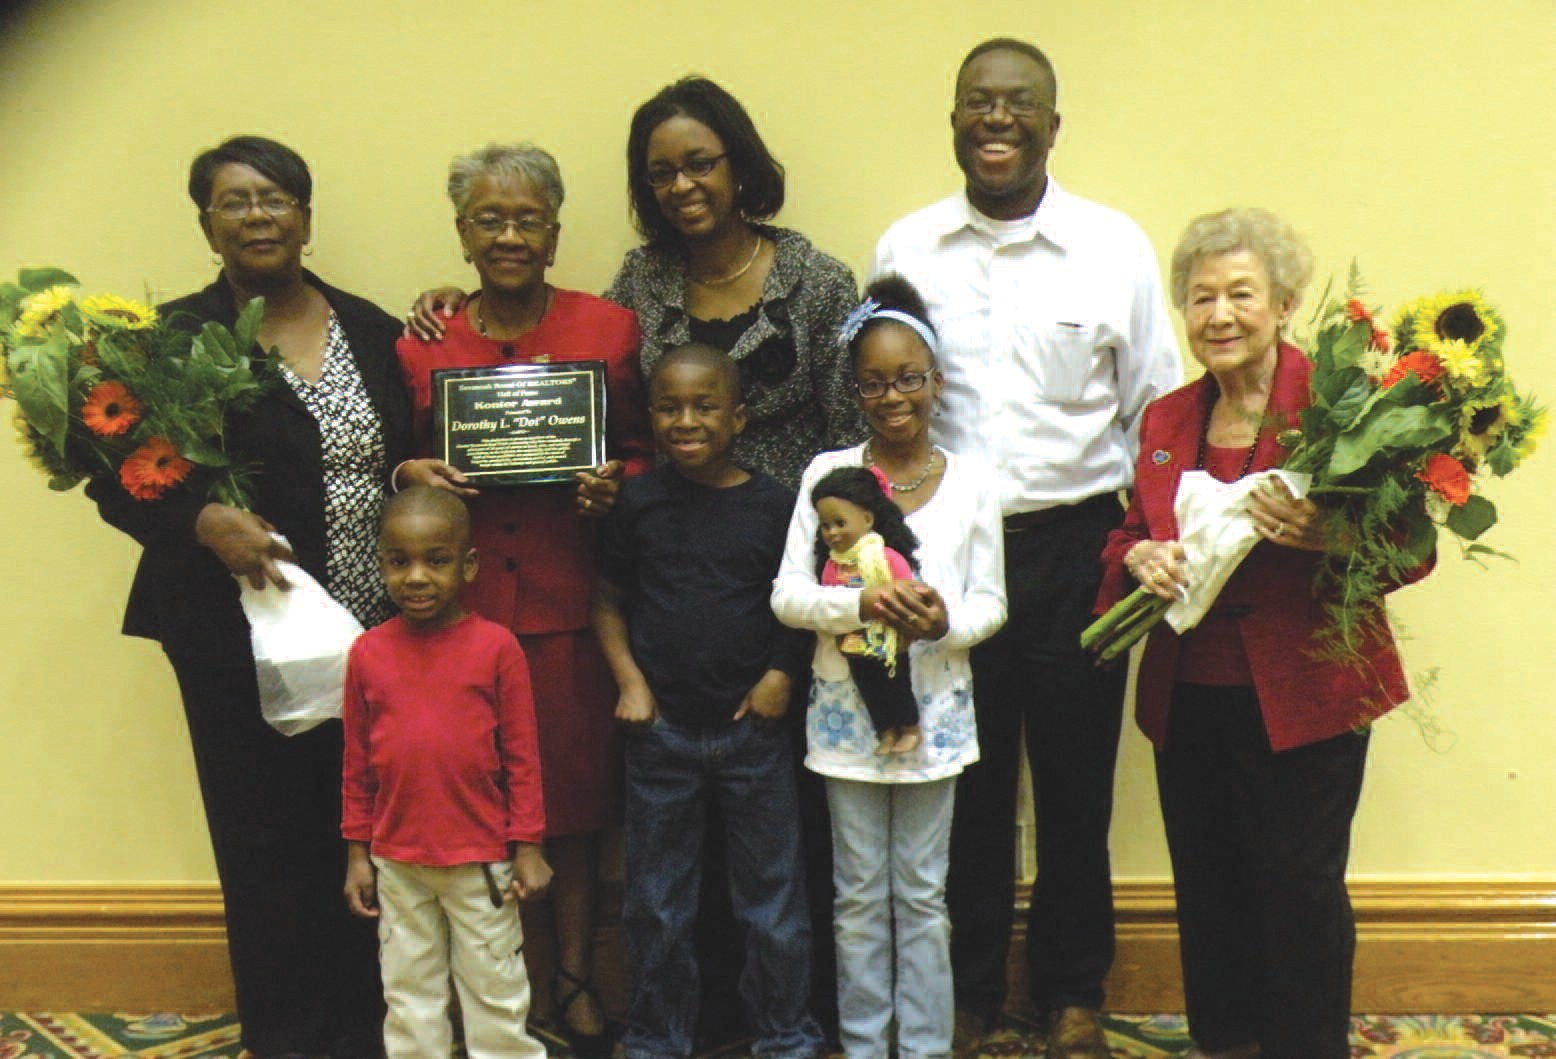 Dot Owens (second from left) pictured with daughter, son-in-law, sister, grandchildren, and Mrs. Harriet Konter (right).